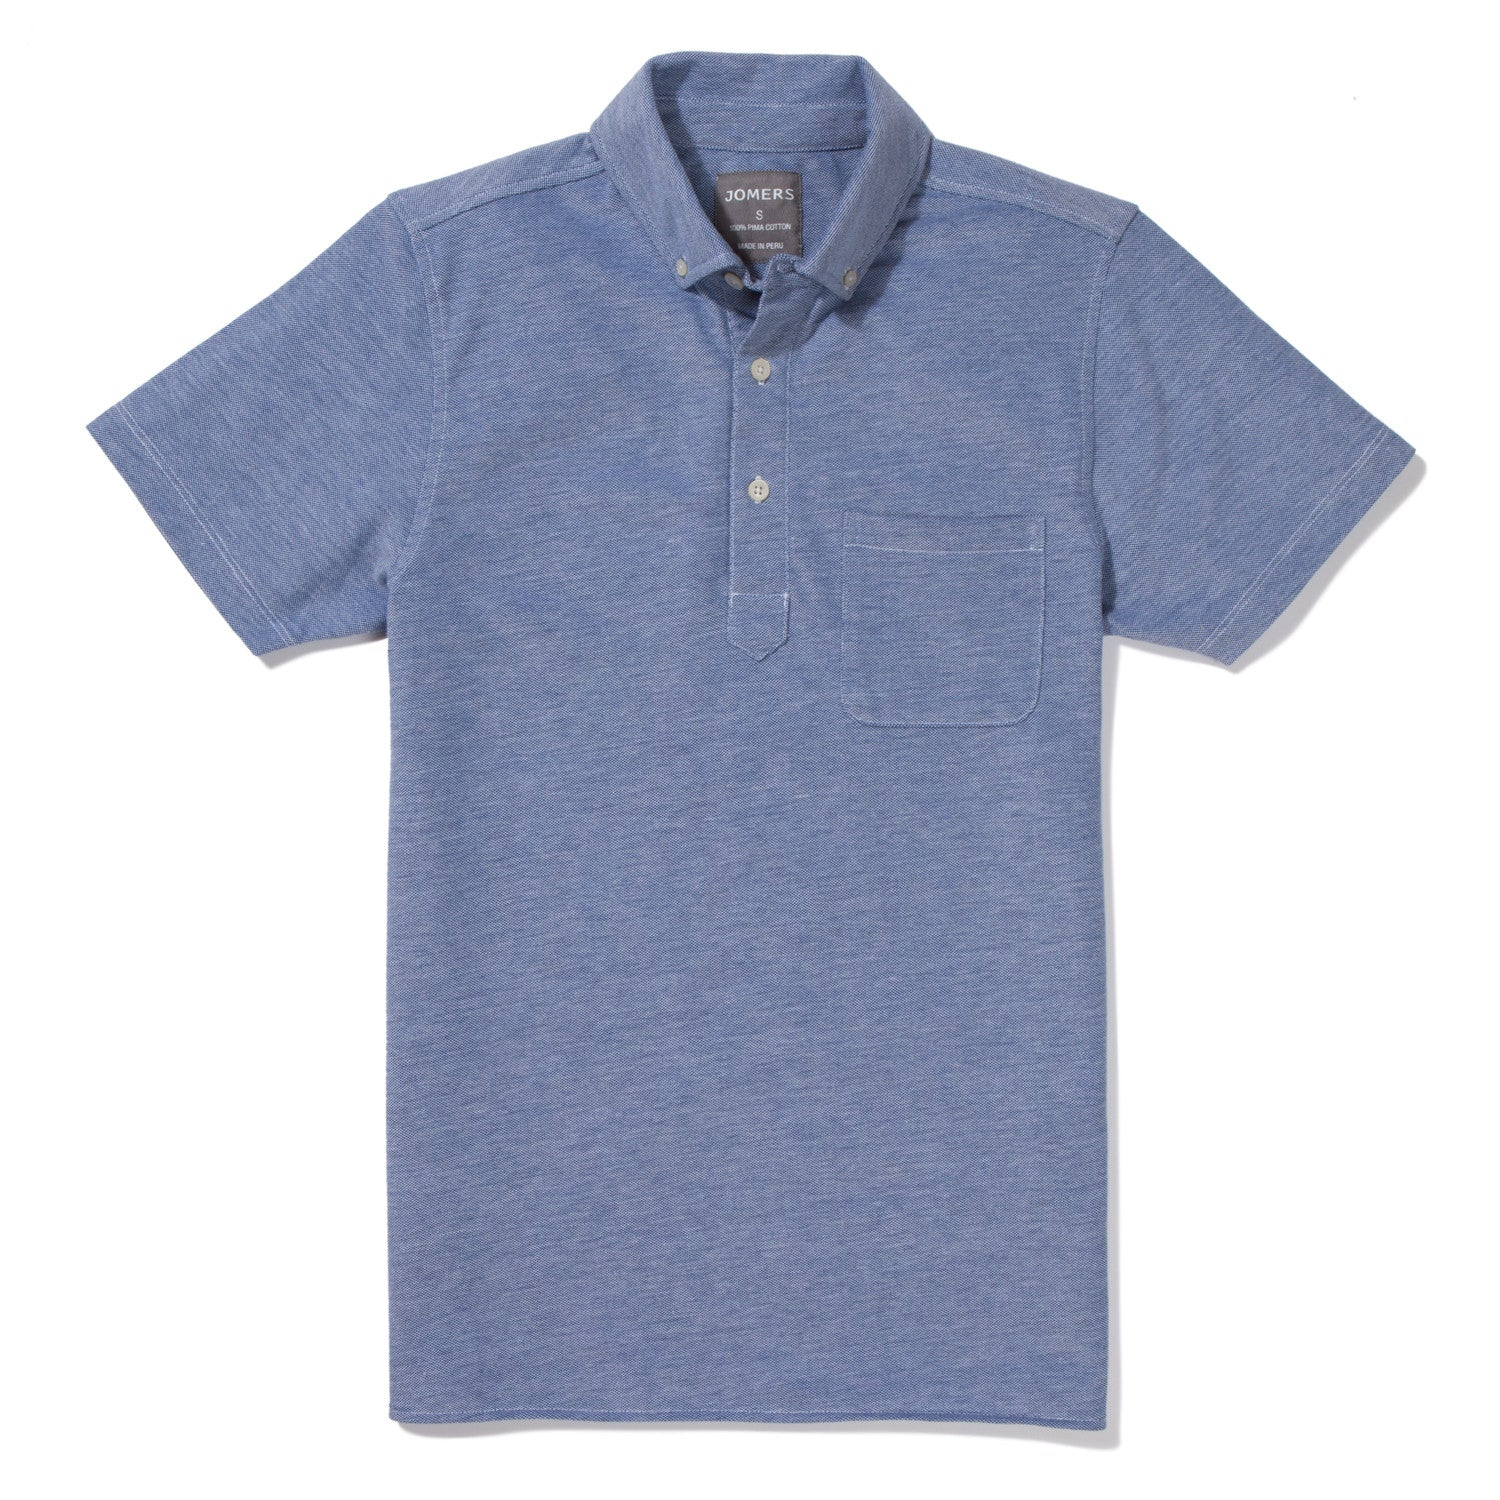 Shop For Sale Laird Apparel Ocean Short Sleeve Polo Charcoal XL Clearance Newest Buy Cheap Wide Range Of 0qP5EpxCU